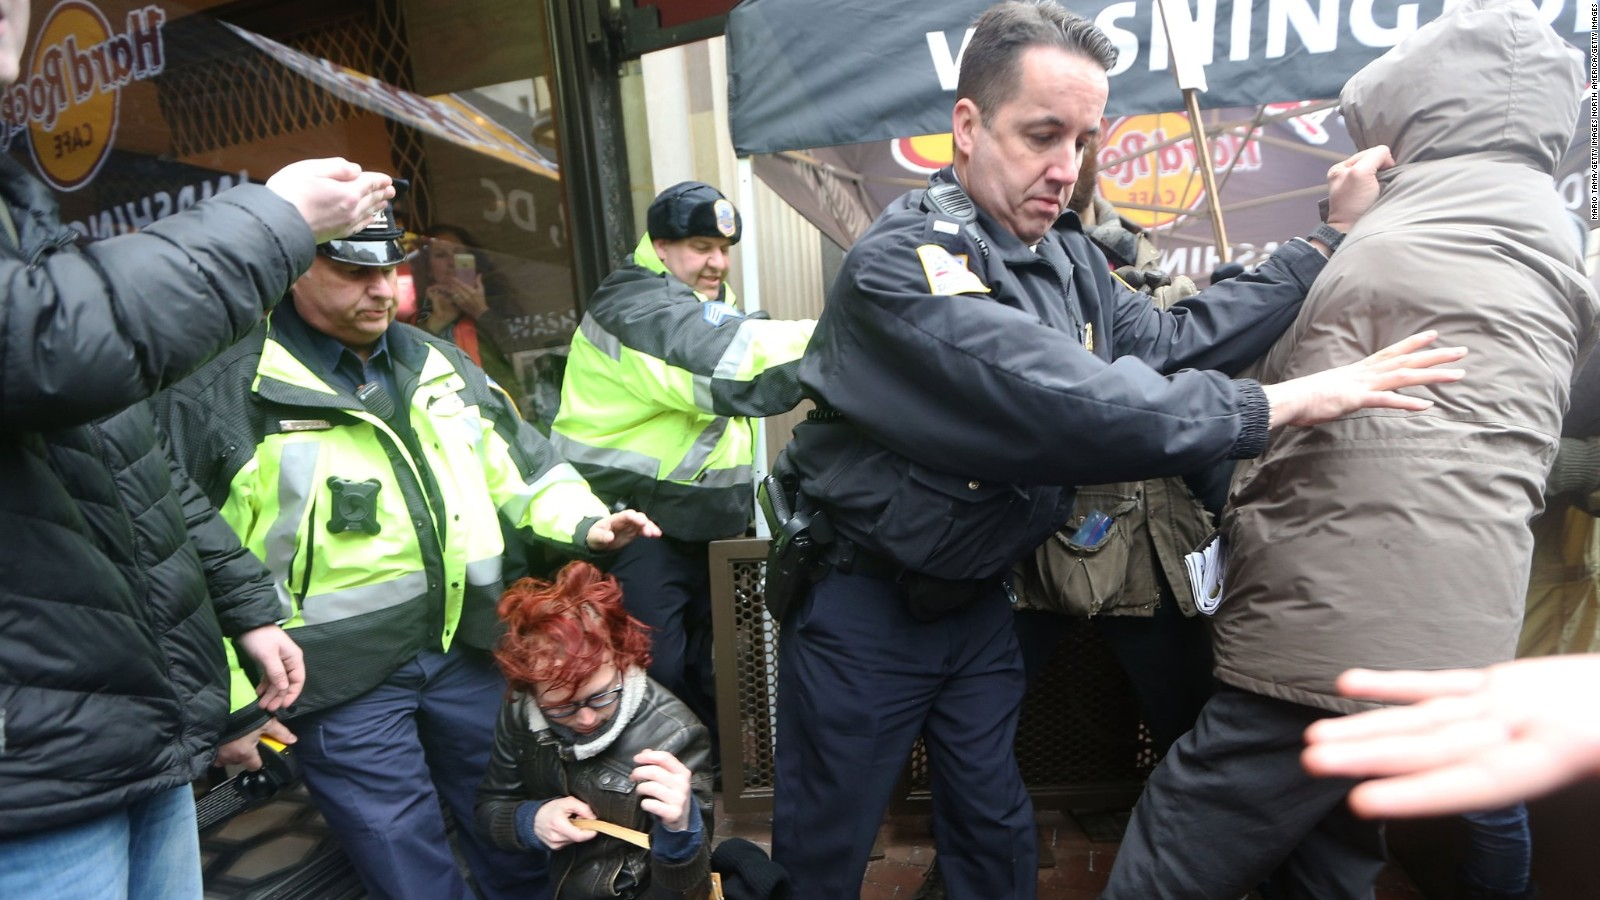 inauguration protests police injured more than 200 arrested